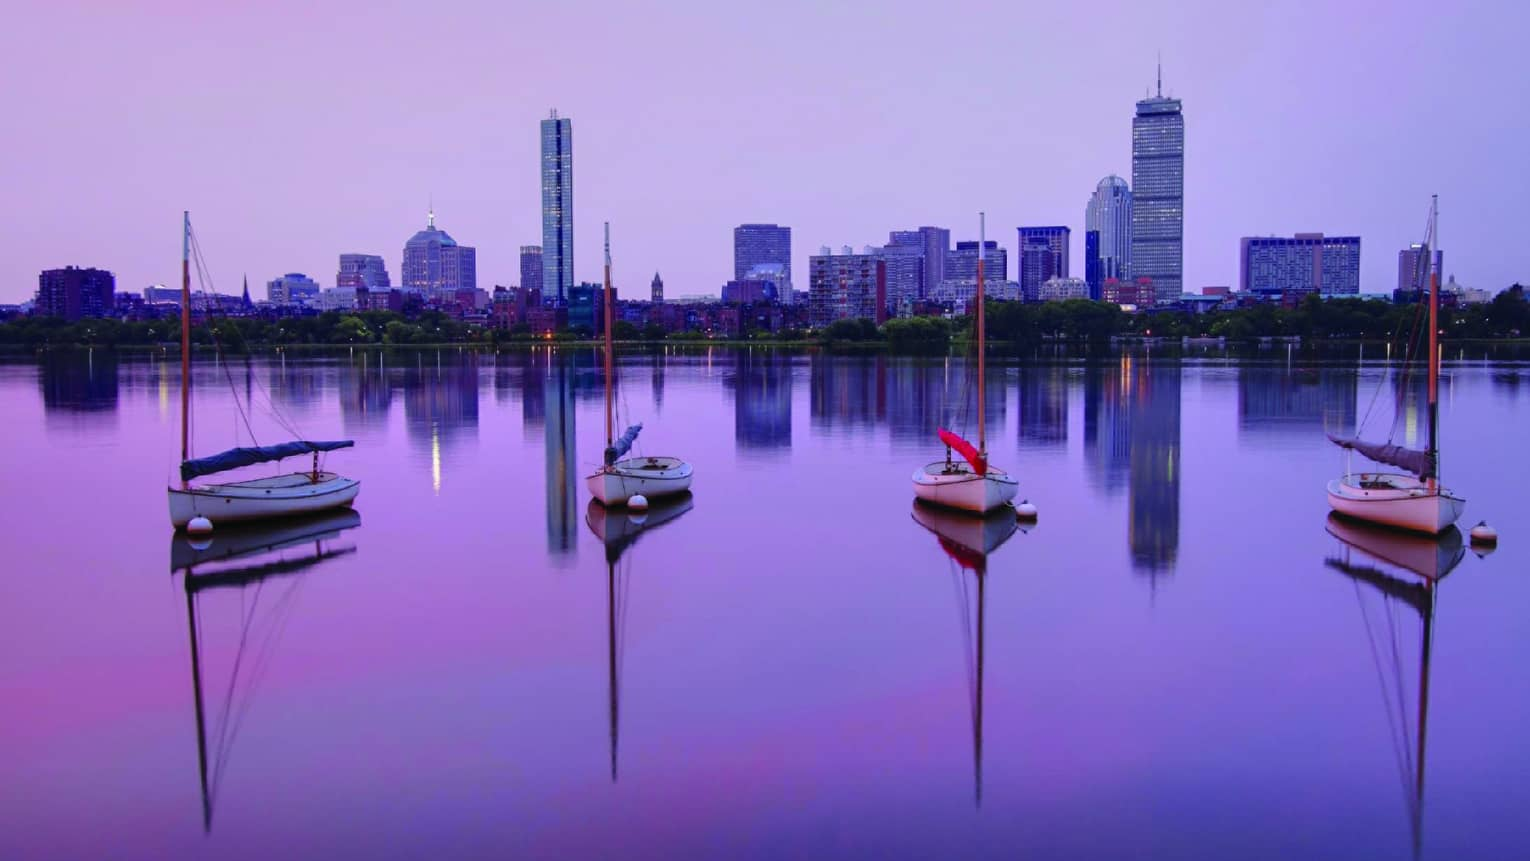 Sailboats parked on the Charles River, Boston skyline in background, purple sunrise